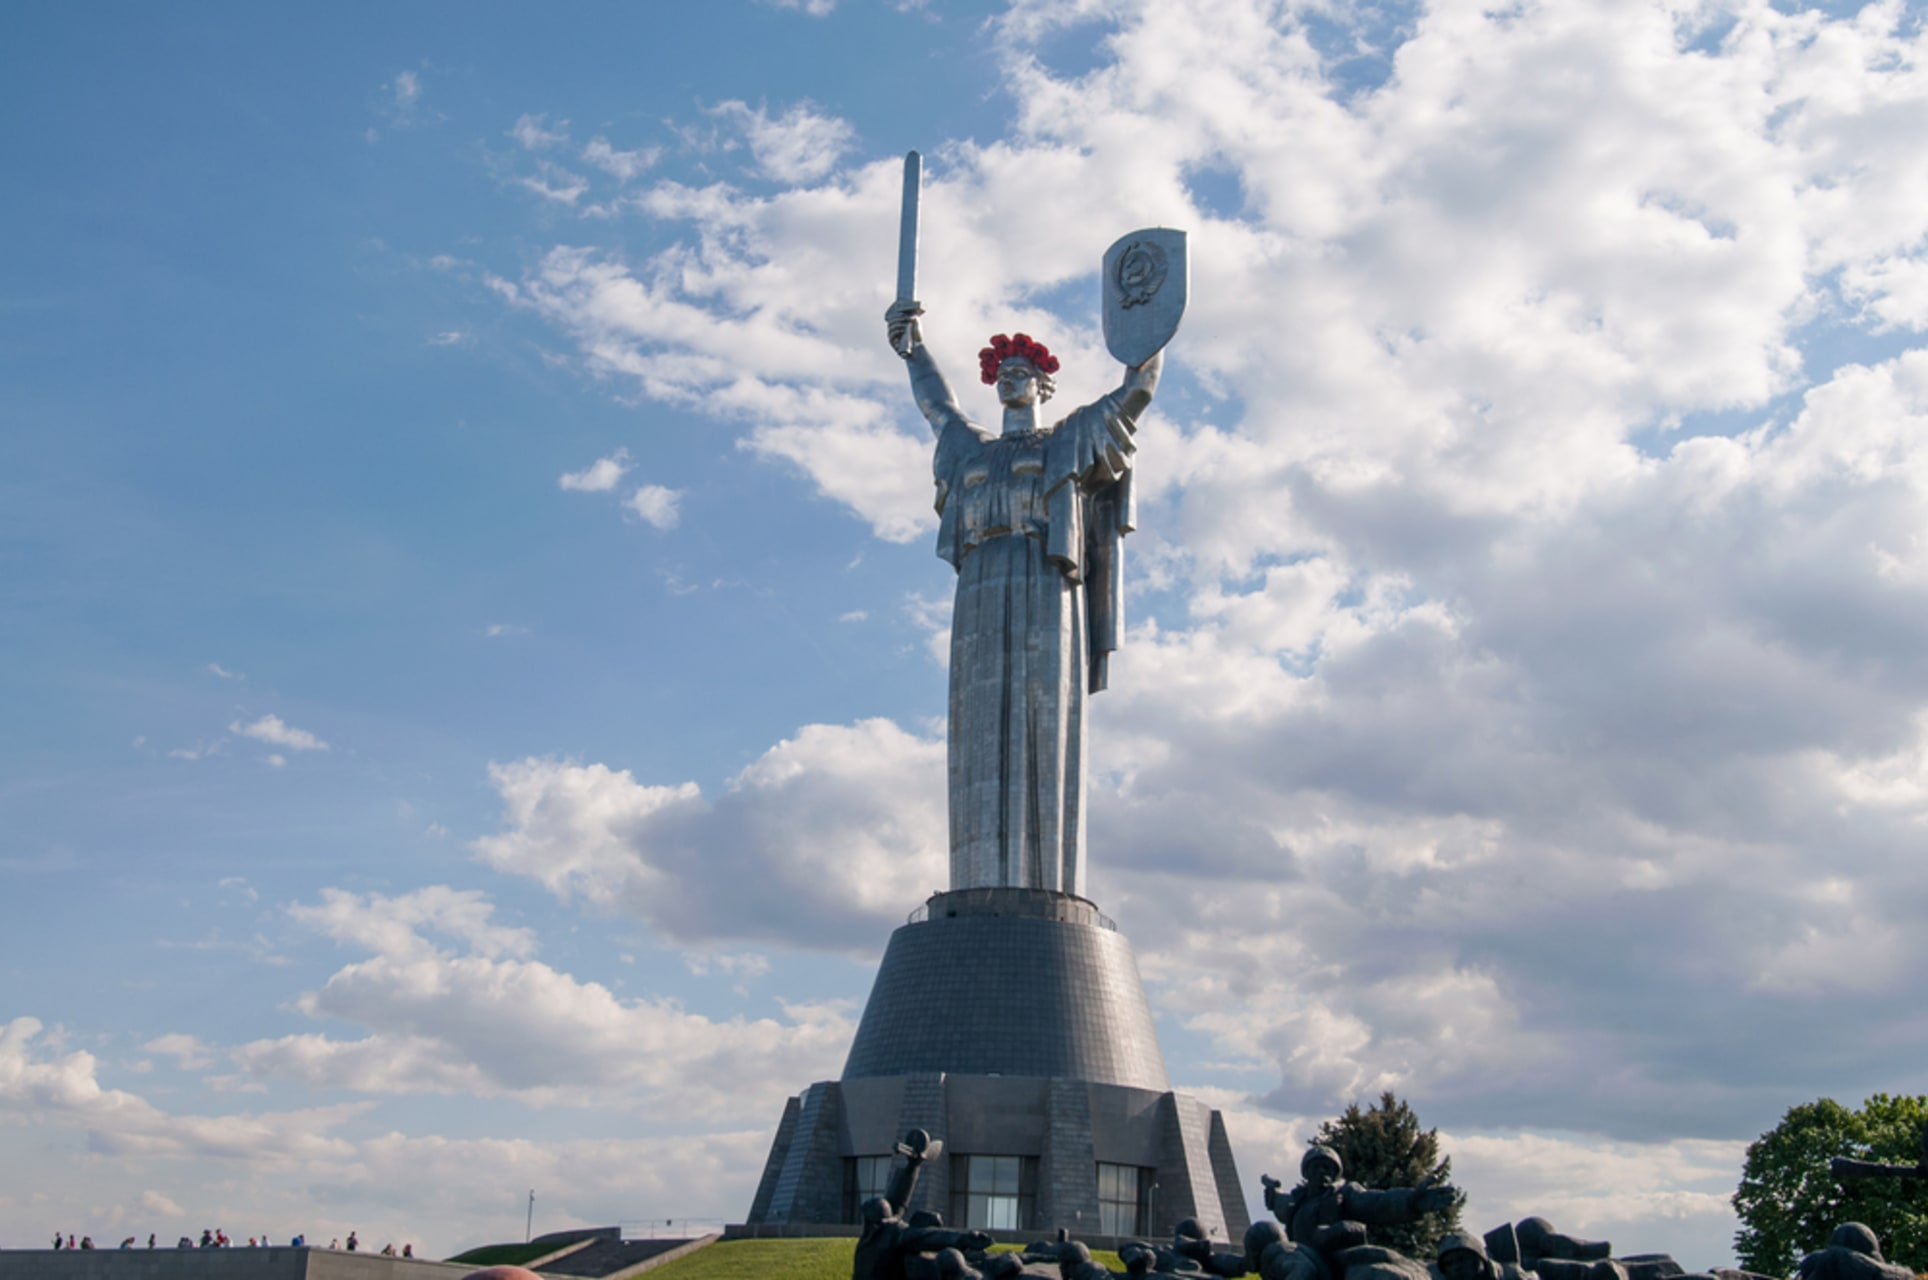 Kyiv - Flower Tale and Gigantic Motherland Monument